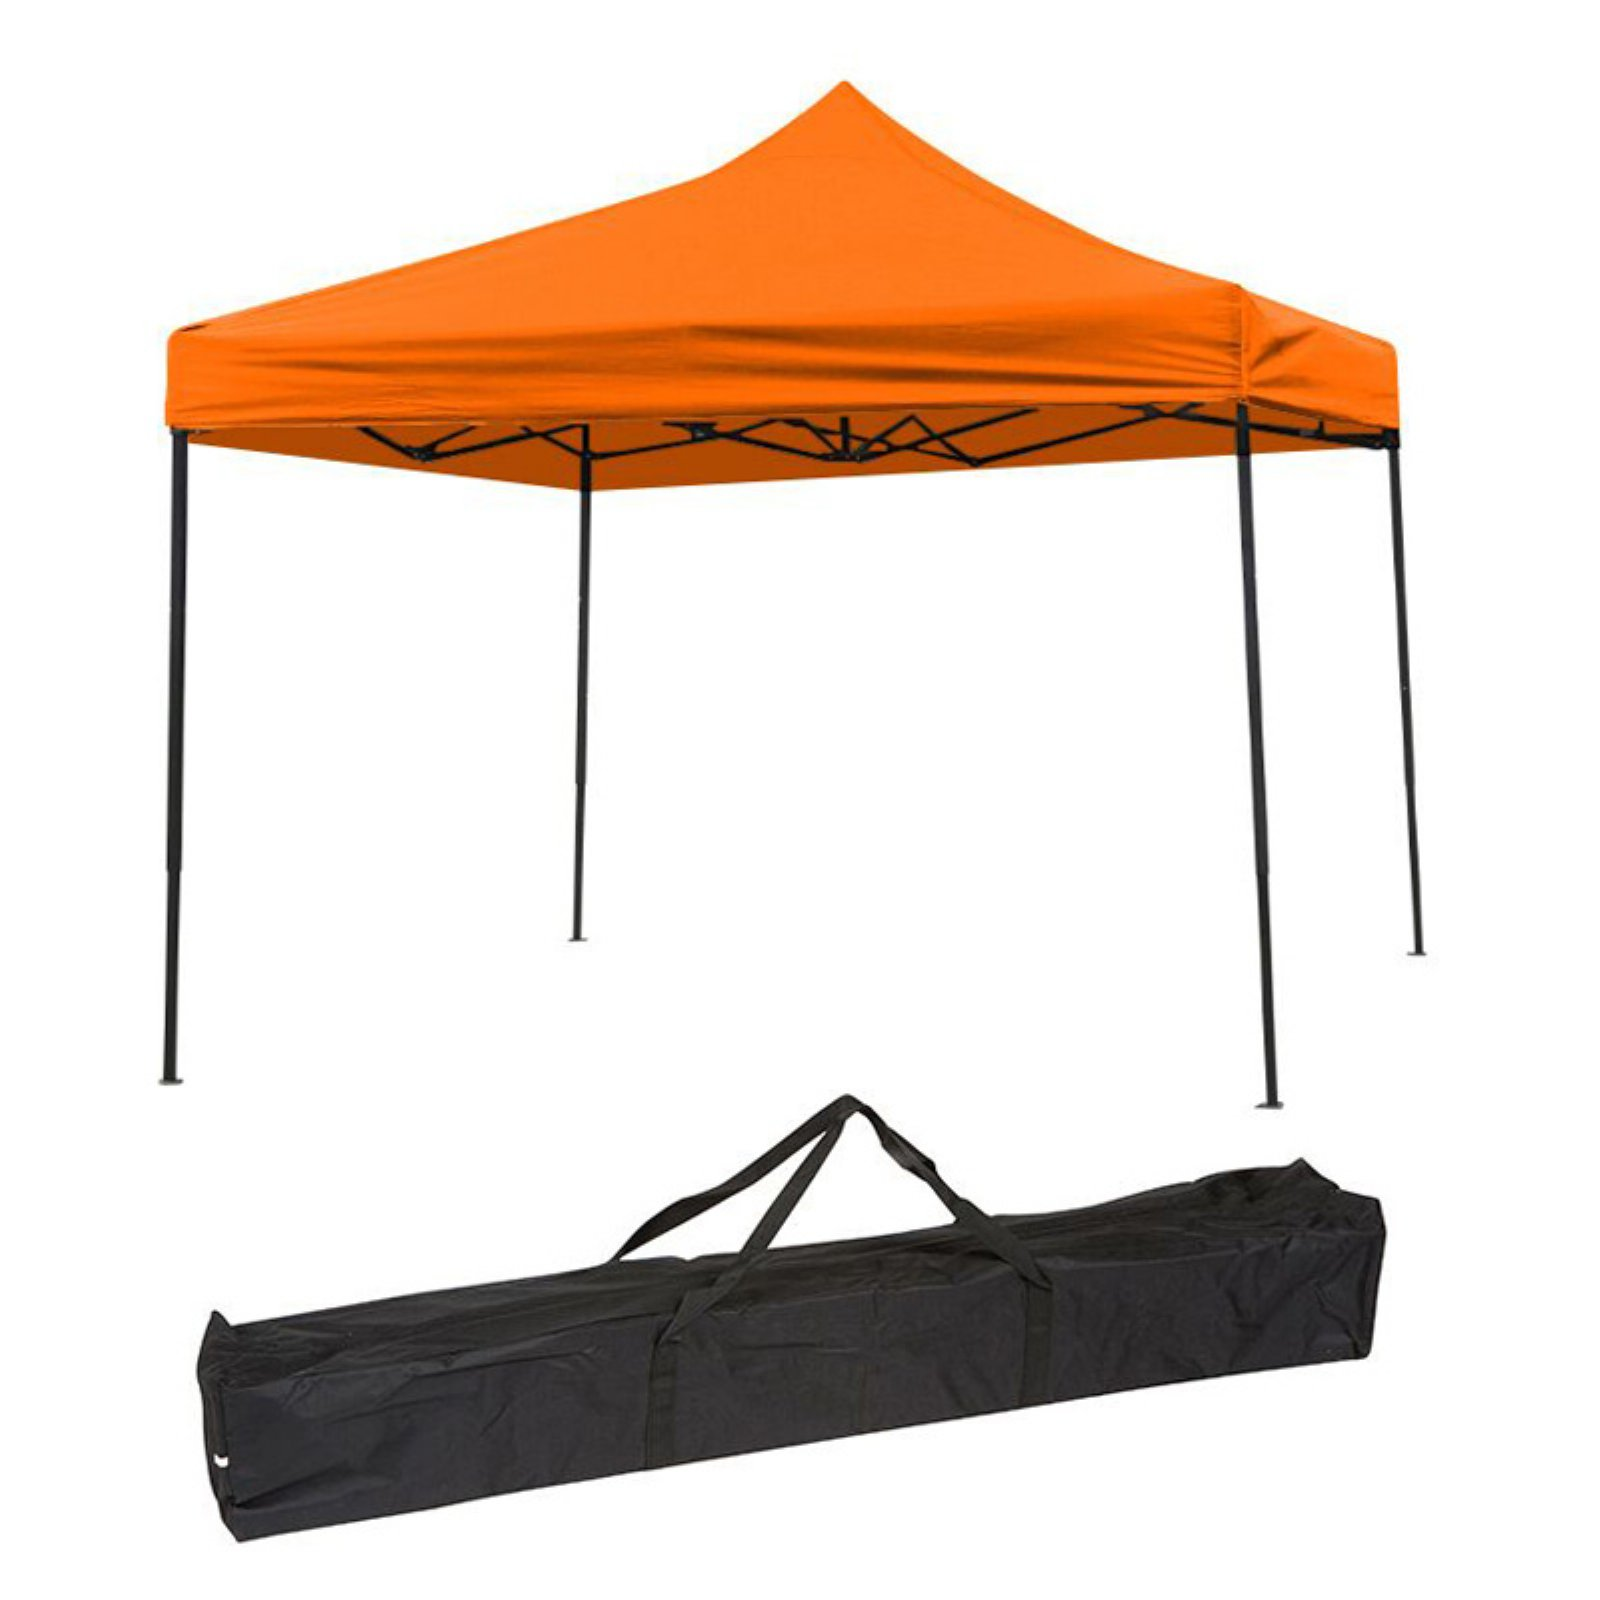 Lightweight u0026 Portable Canopy Tent Set - 10u0027 x 10u0027 - By Trademark Innovations  sc 1 st  Walmart : wallmart canopy - memphite.com